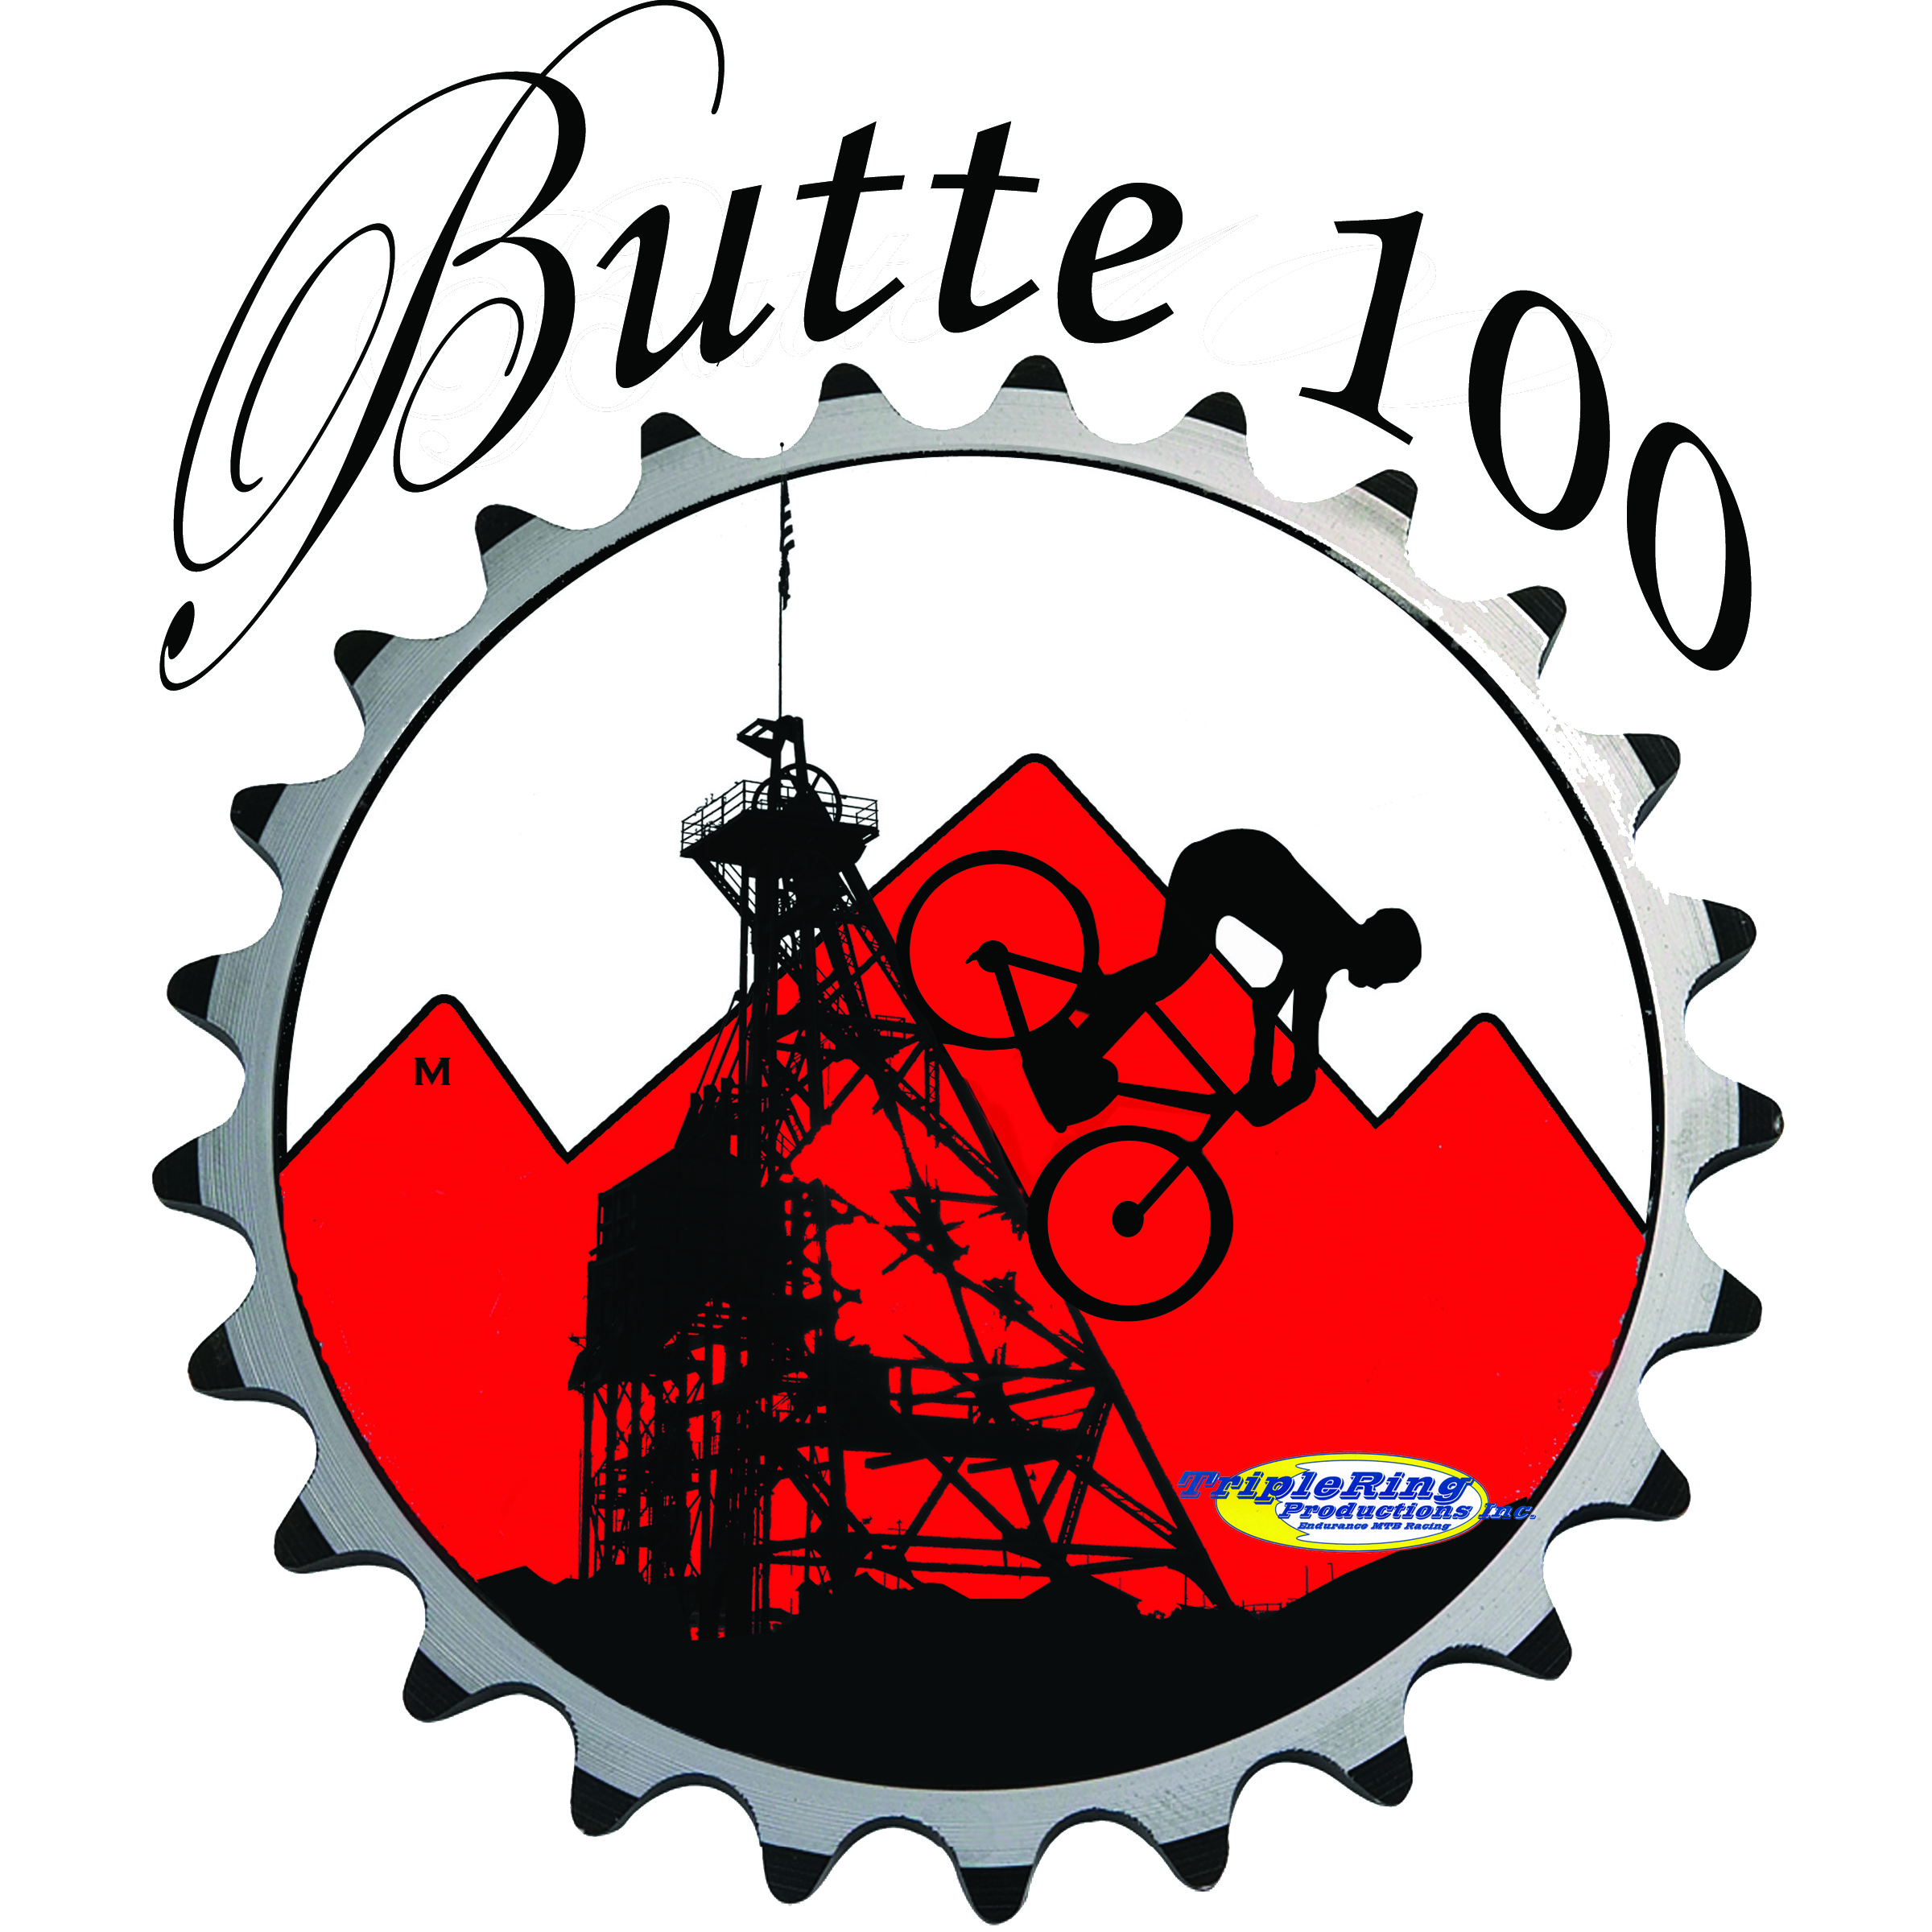 The 2012 Butte 100 Mountain Bike Race: On It's Way | The ...